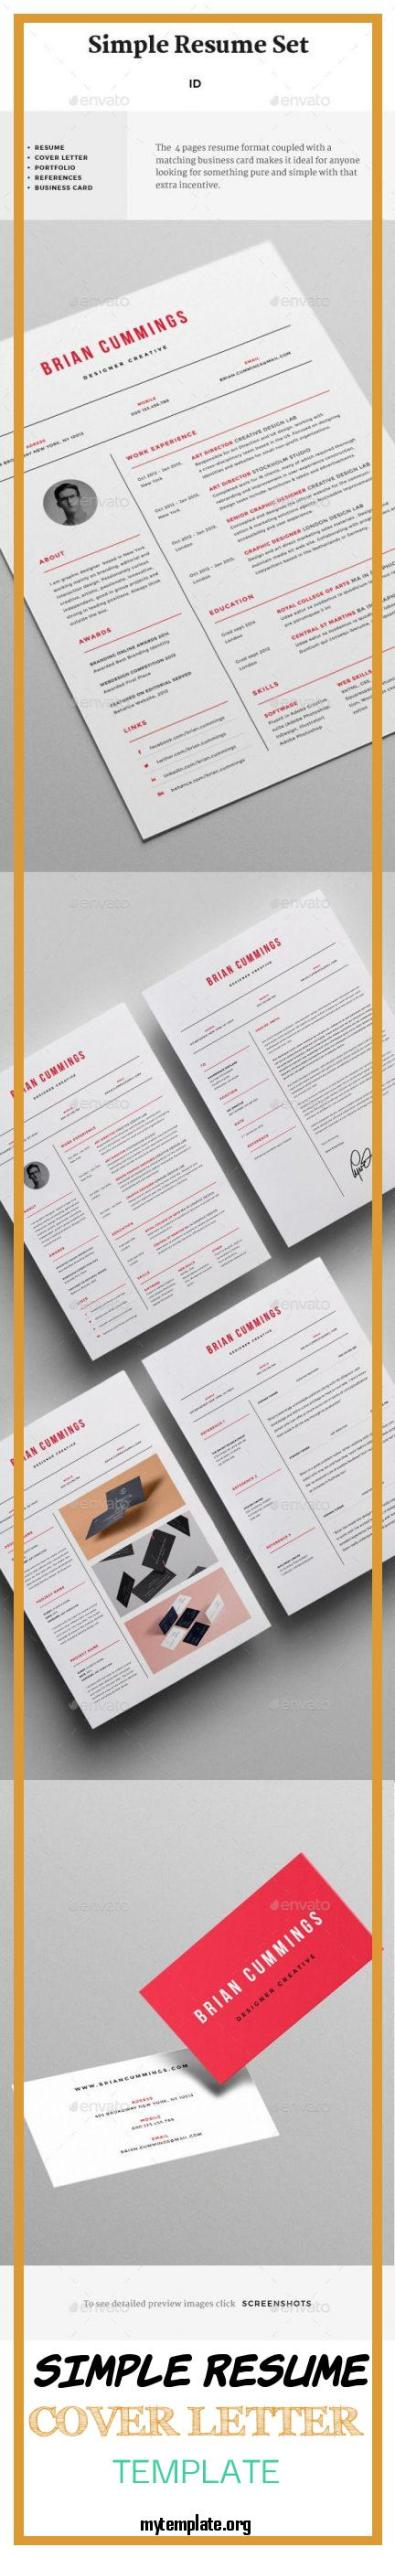 Simple Resume Cover Letter Templates from i1.wp.com